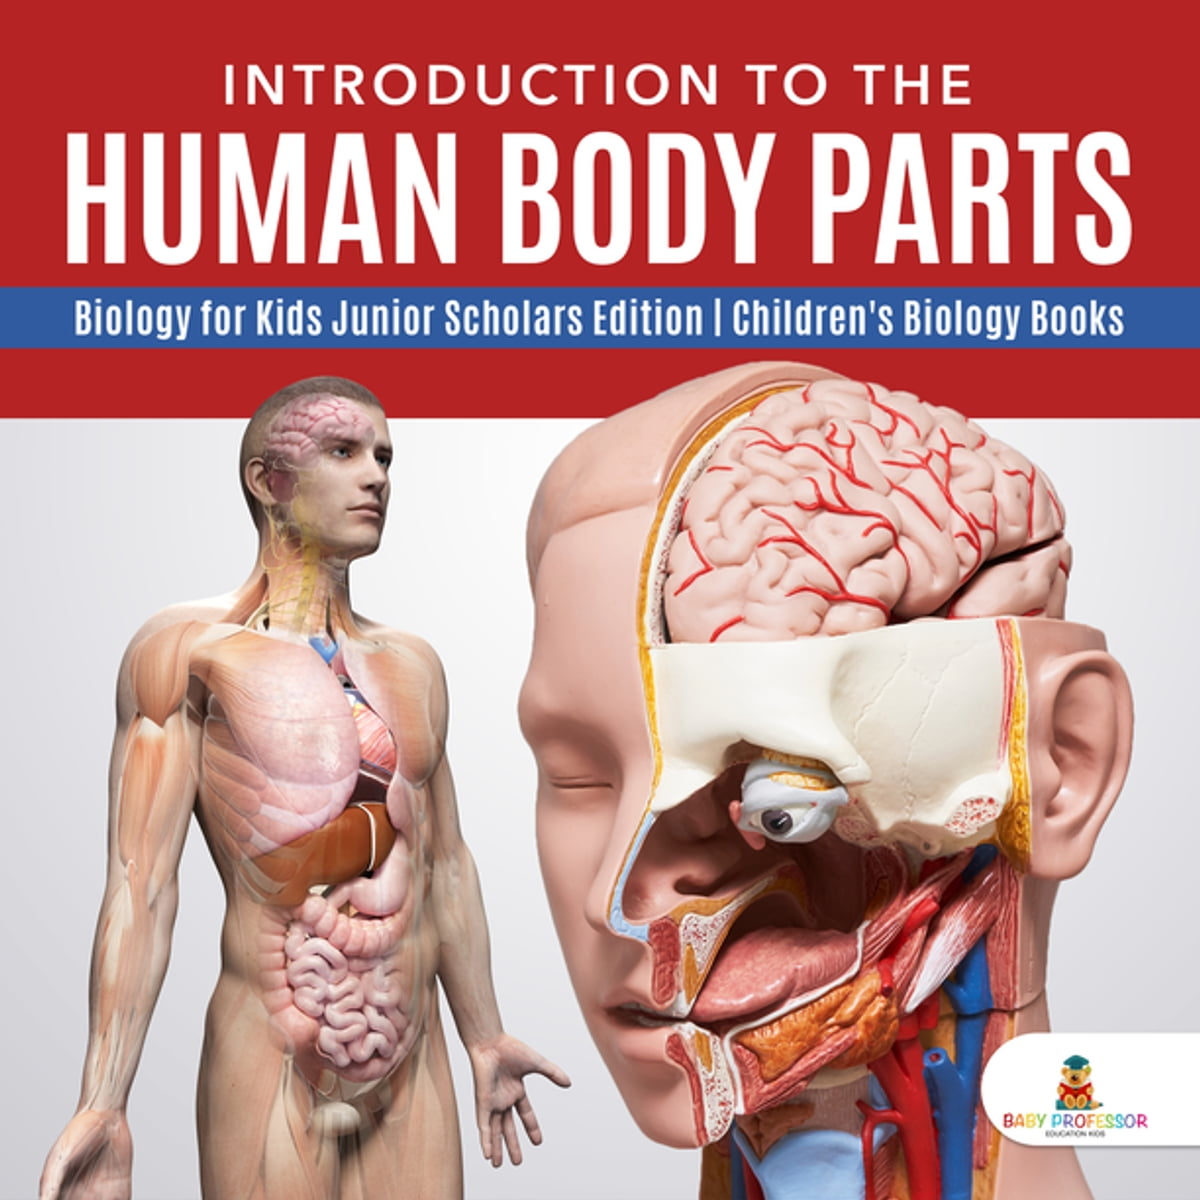 Introduction To The Human Body Parts Biology For Kids Junior Scholars Edition Children S Biology Books Ebook By Baby Professor 9781541965102 Rakuten Kobo United States